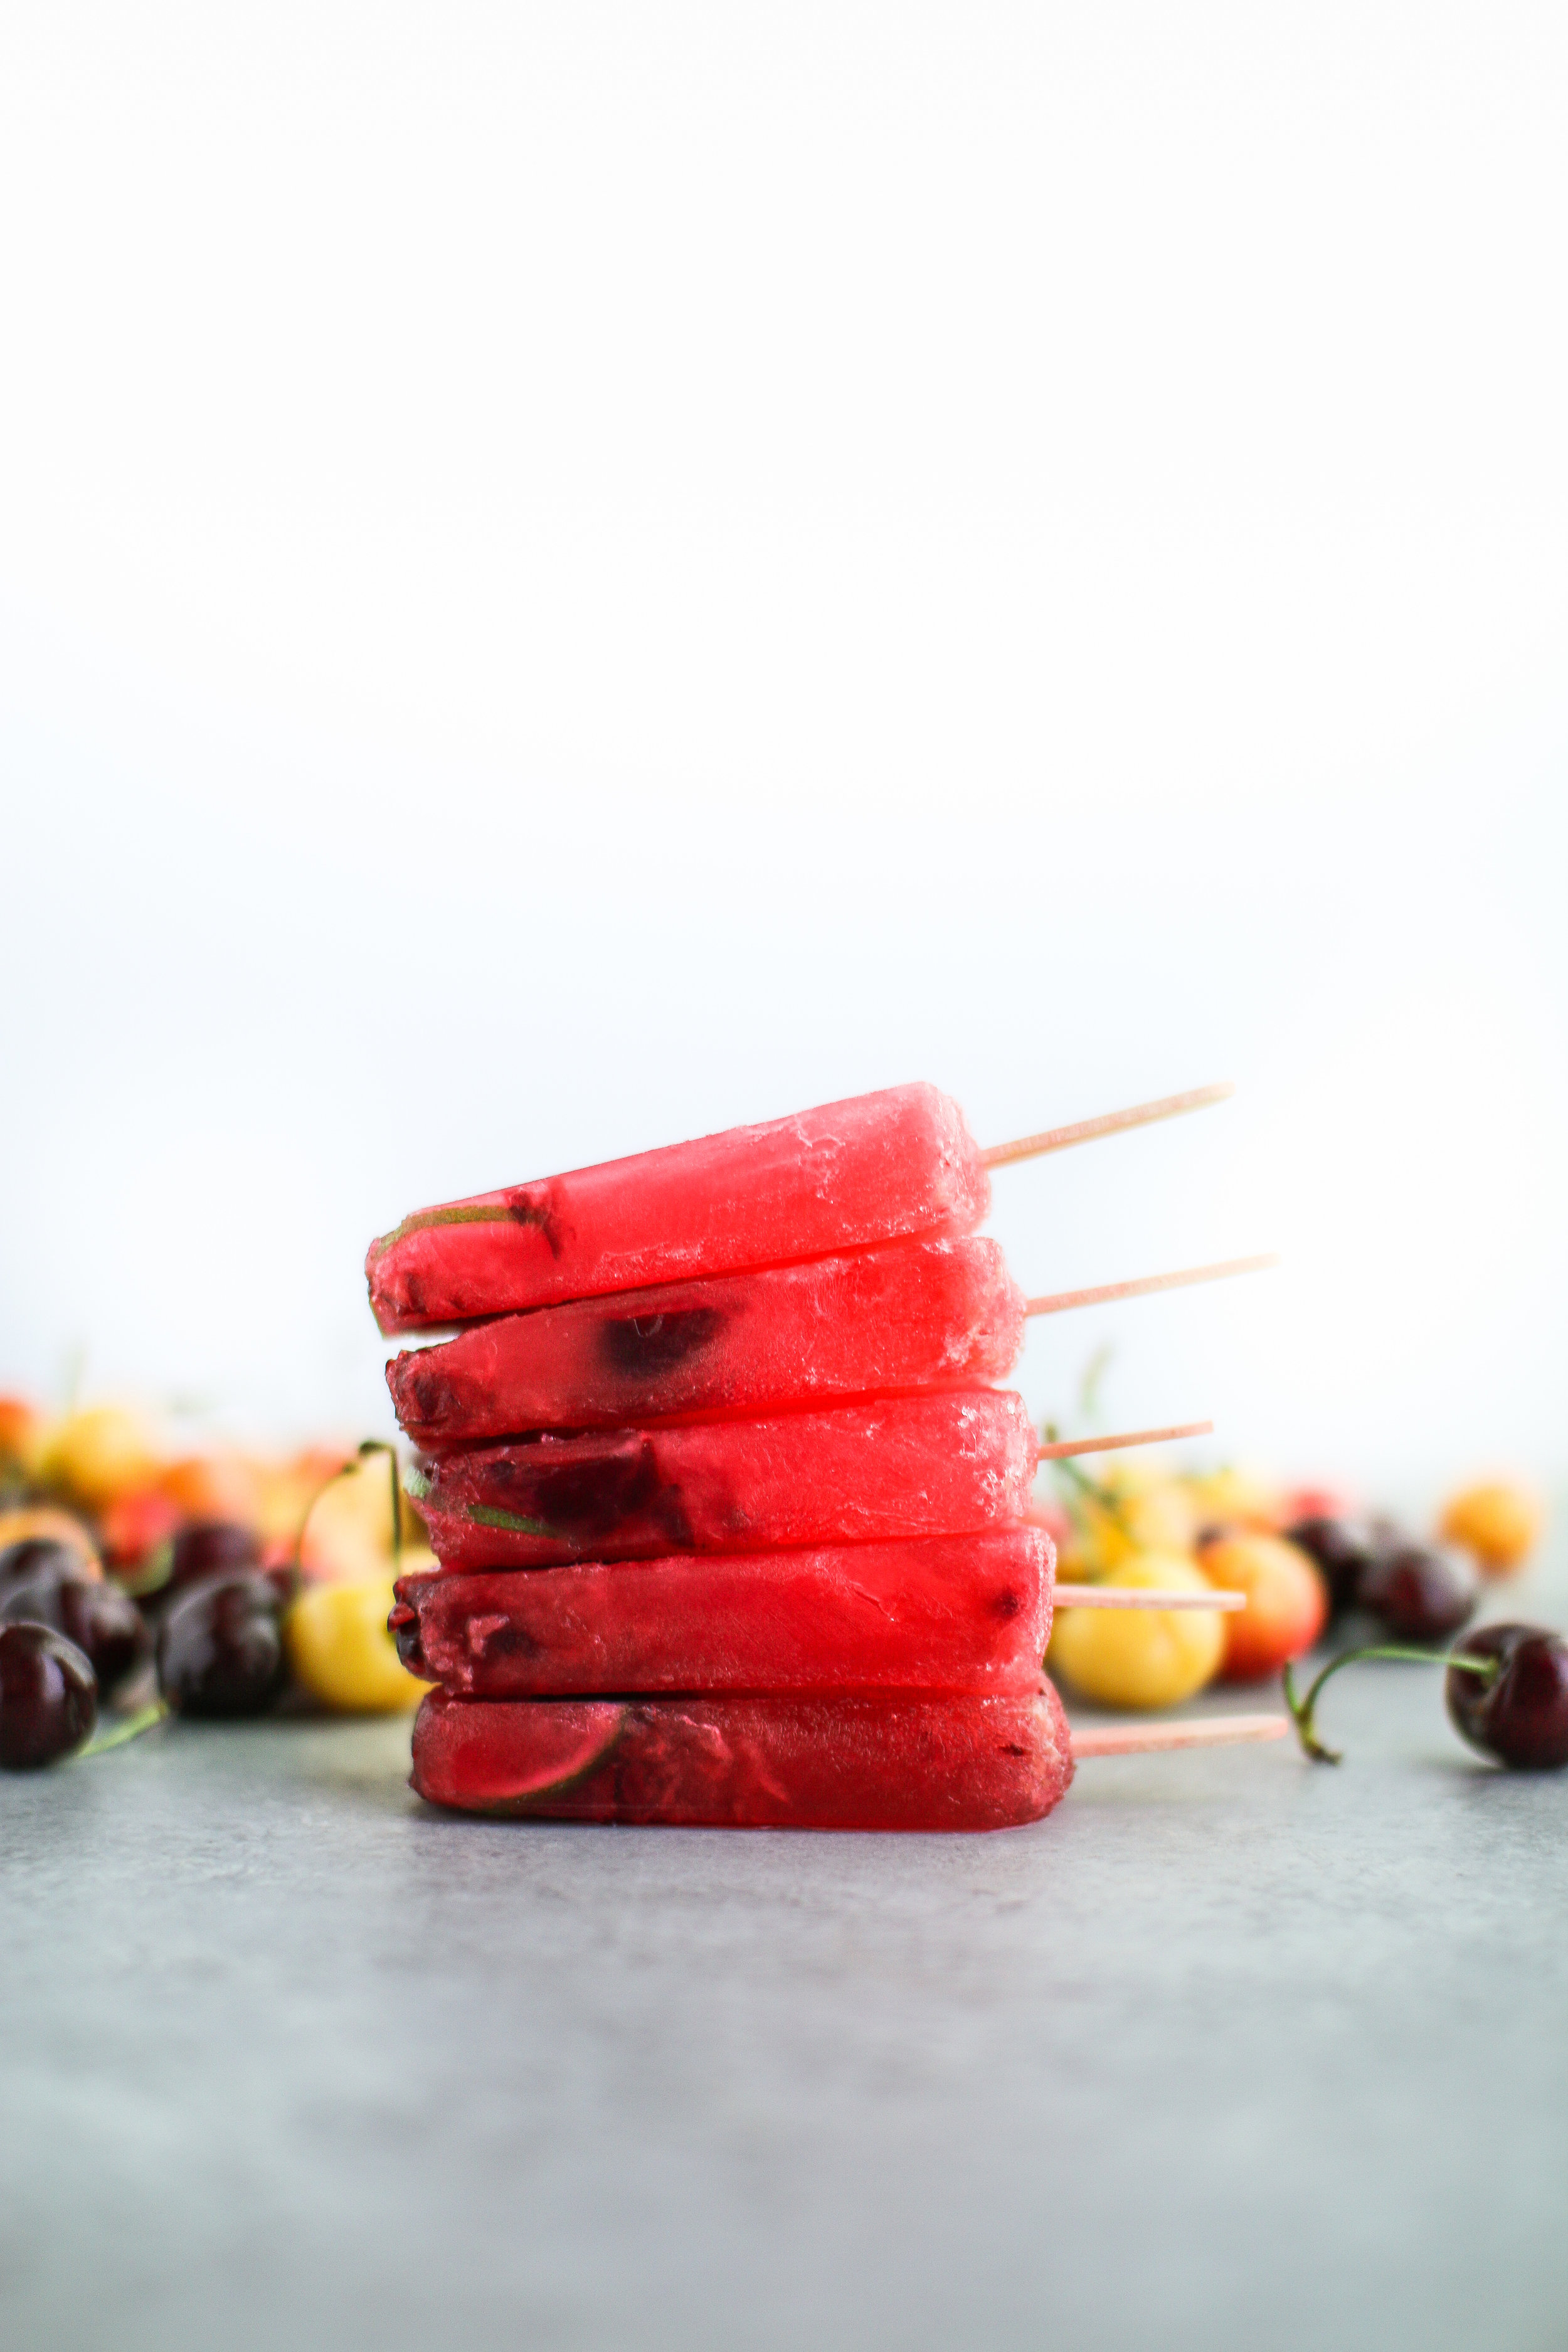 Easy vegan cherry limeade popsicles that are easy to make and as refreshing as can be. They are also packed with vitamin C, vitamin A, and antioxidants.